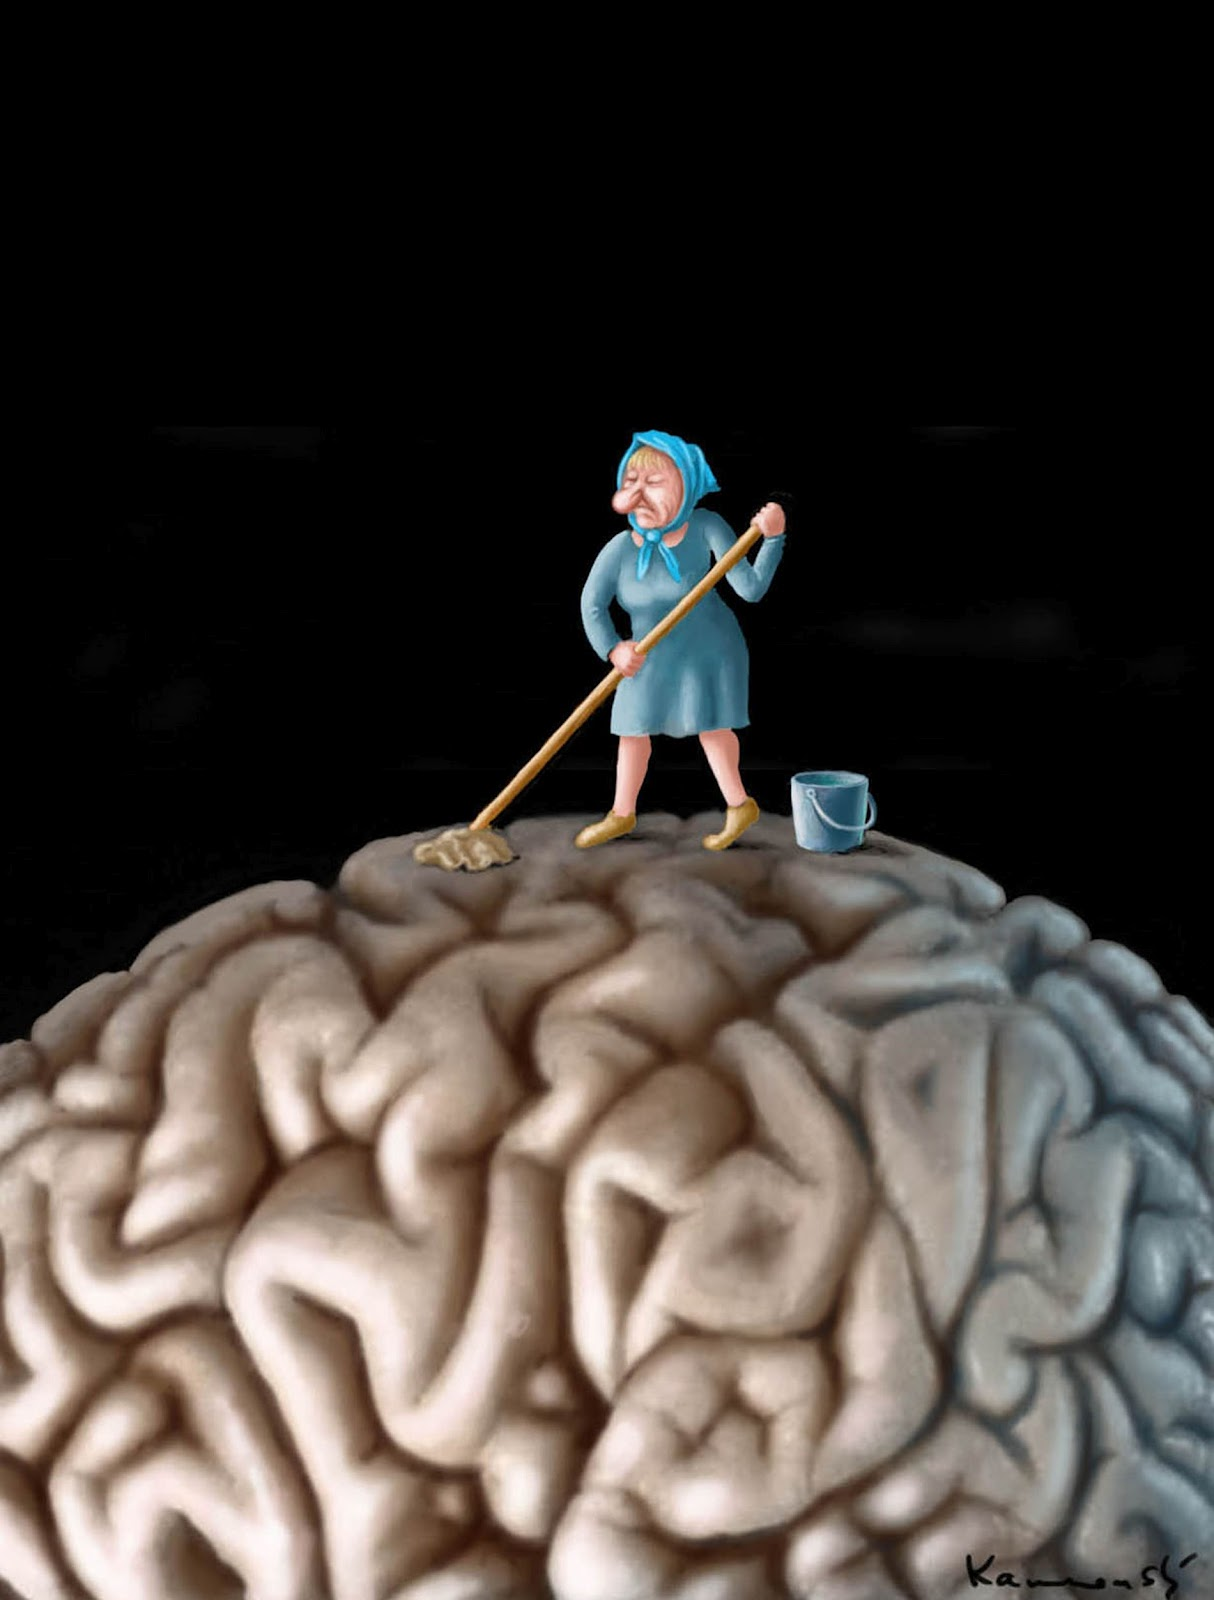 bishopblog time for neuroimaging and pnas to clean up its act